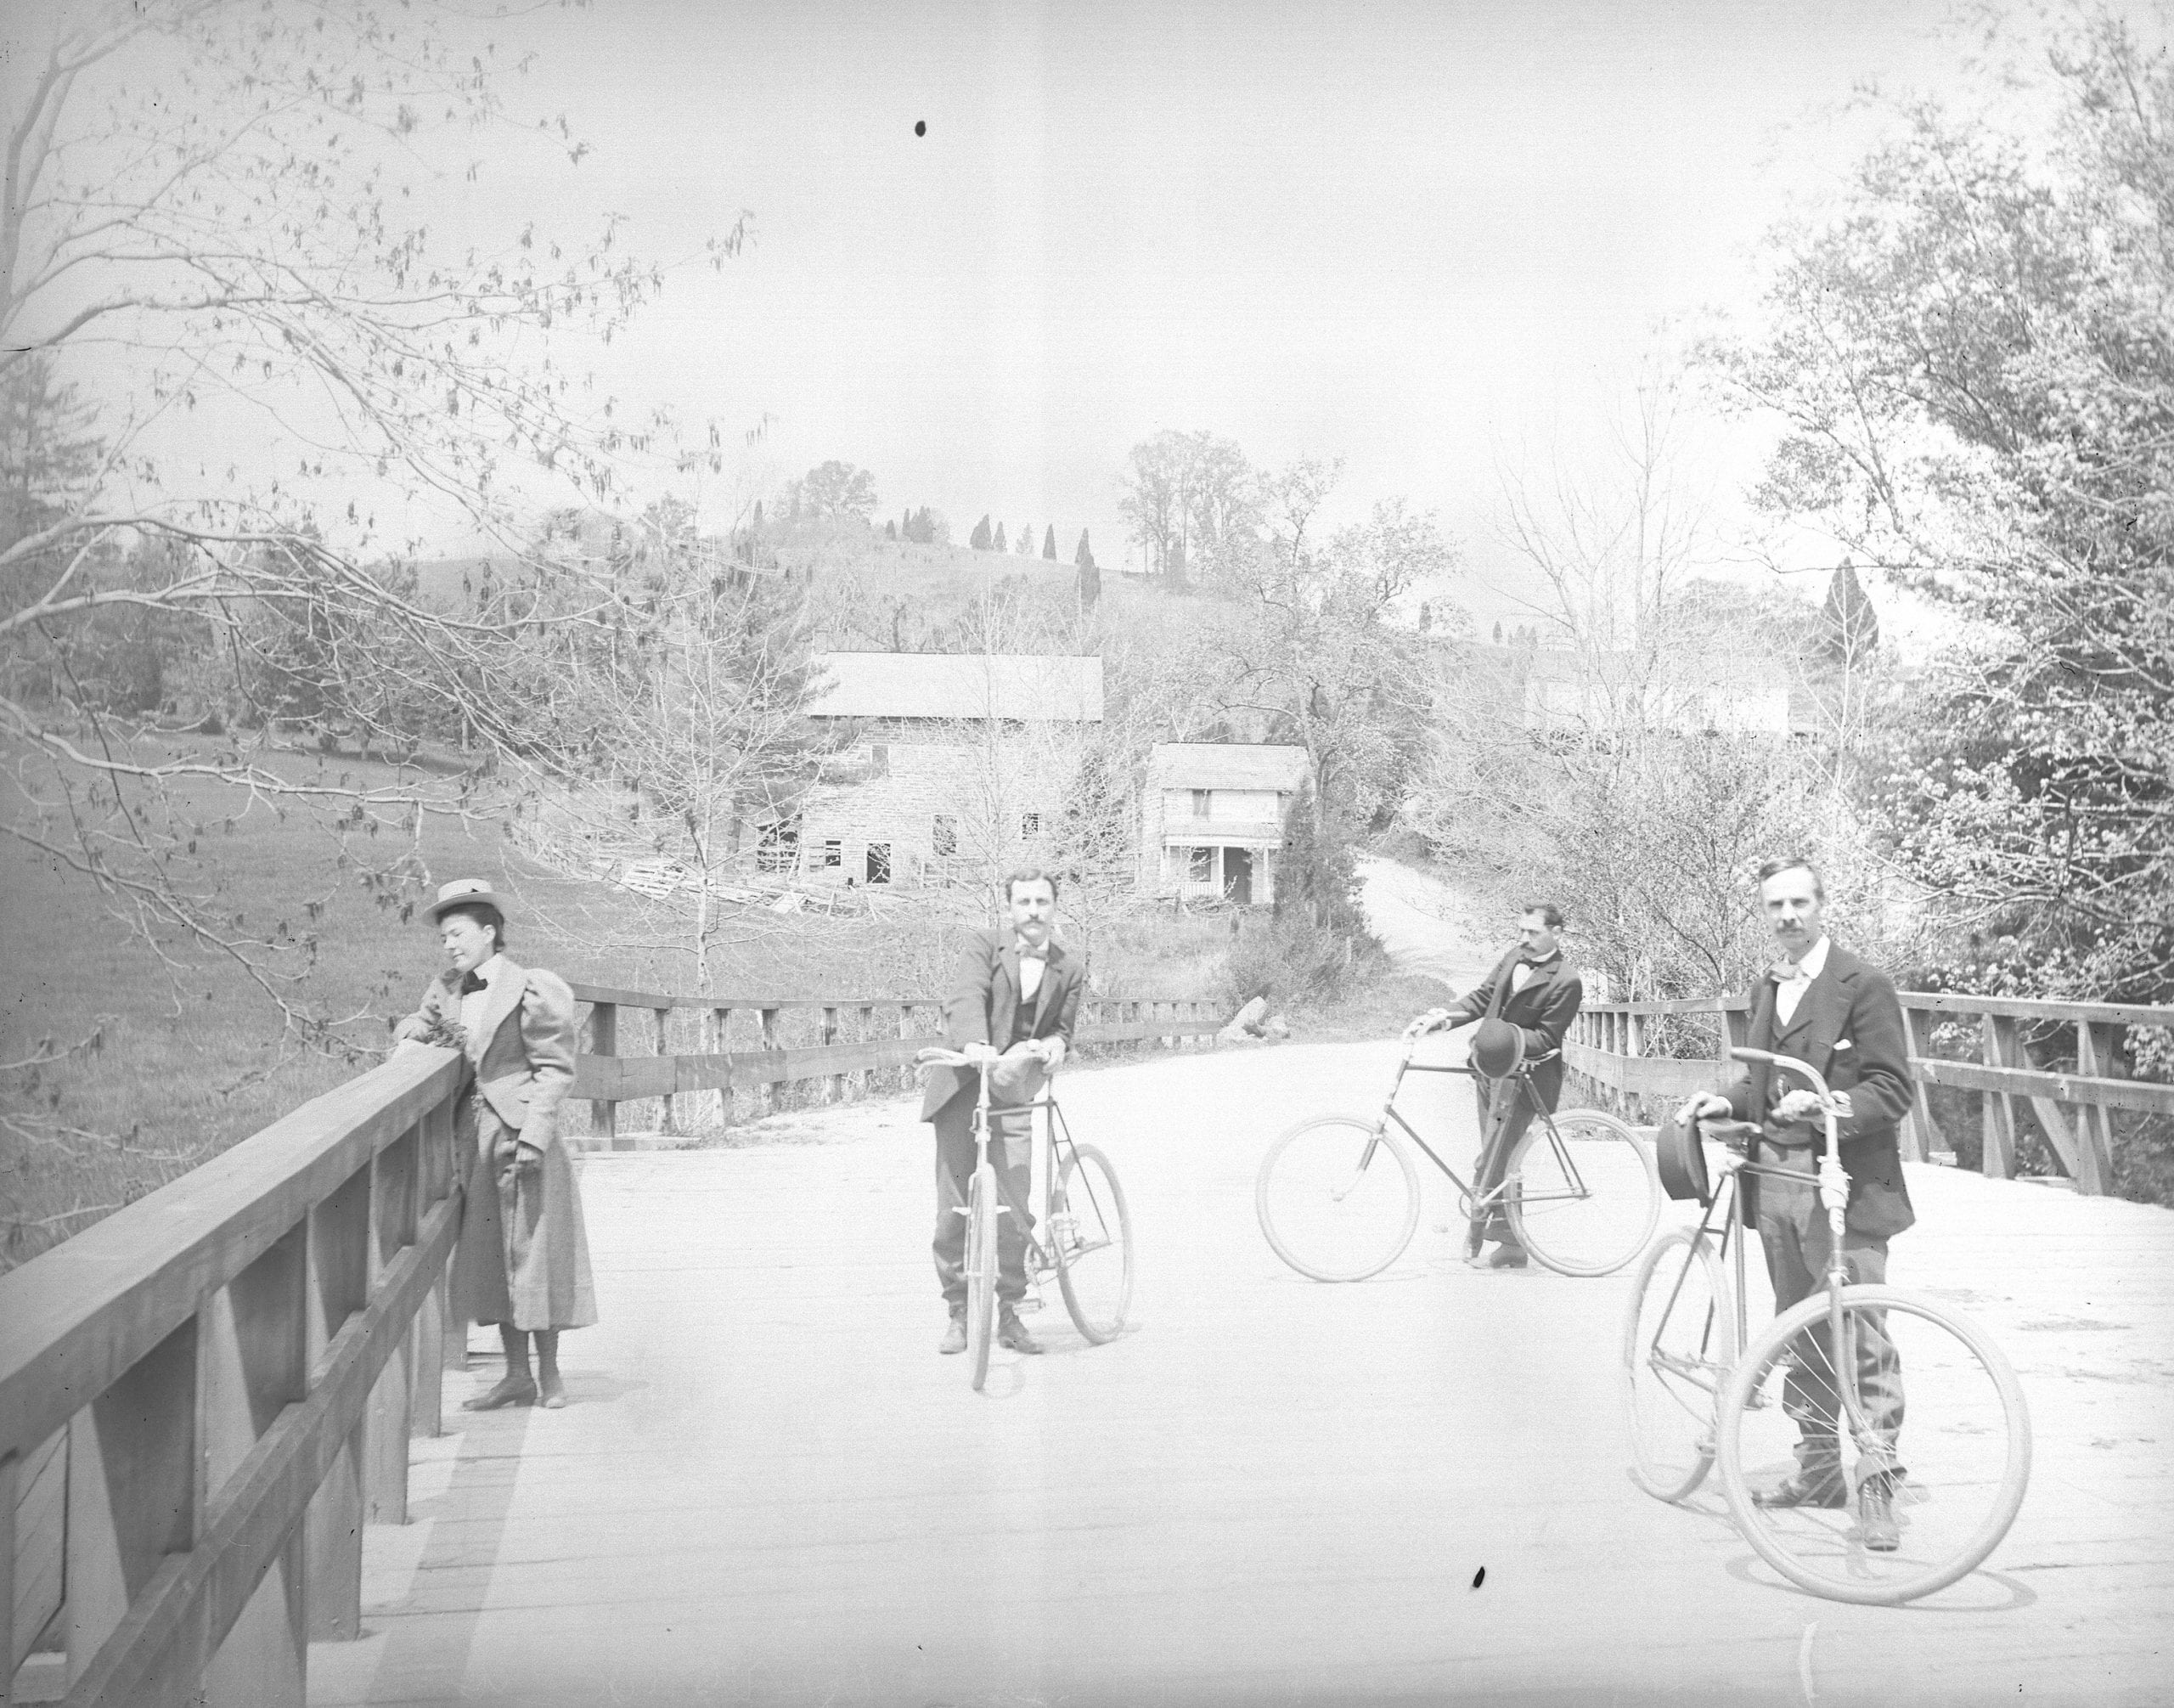 Amazing Photo of Men Bicycling Near Peirce Mill